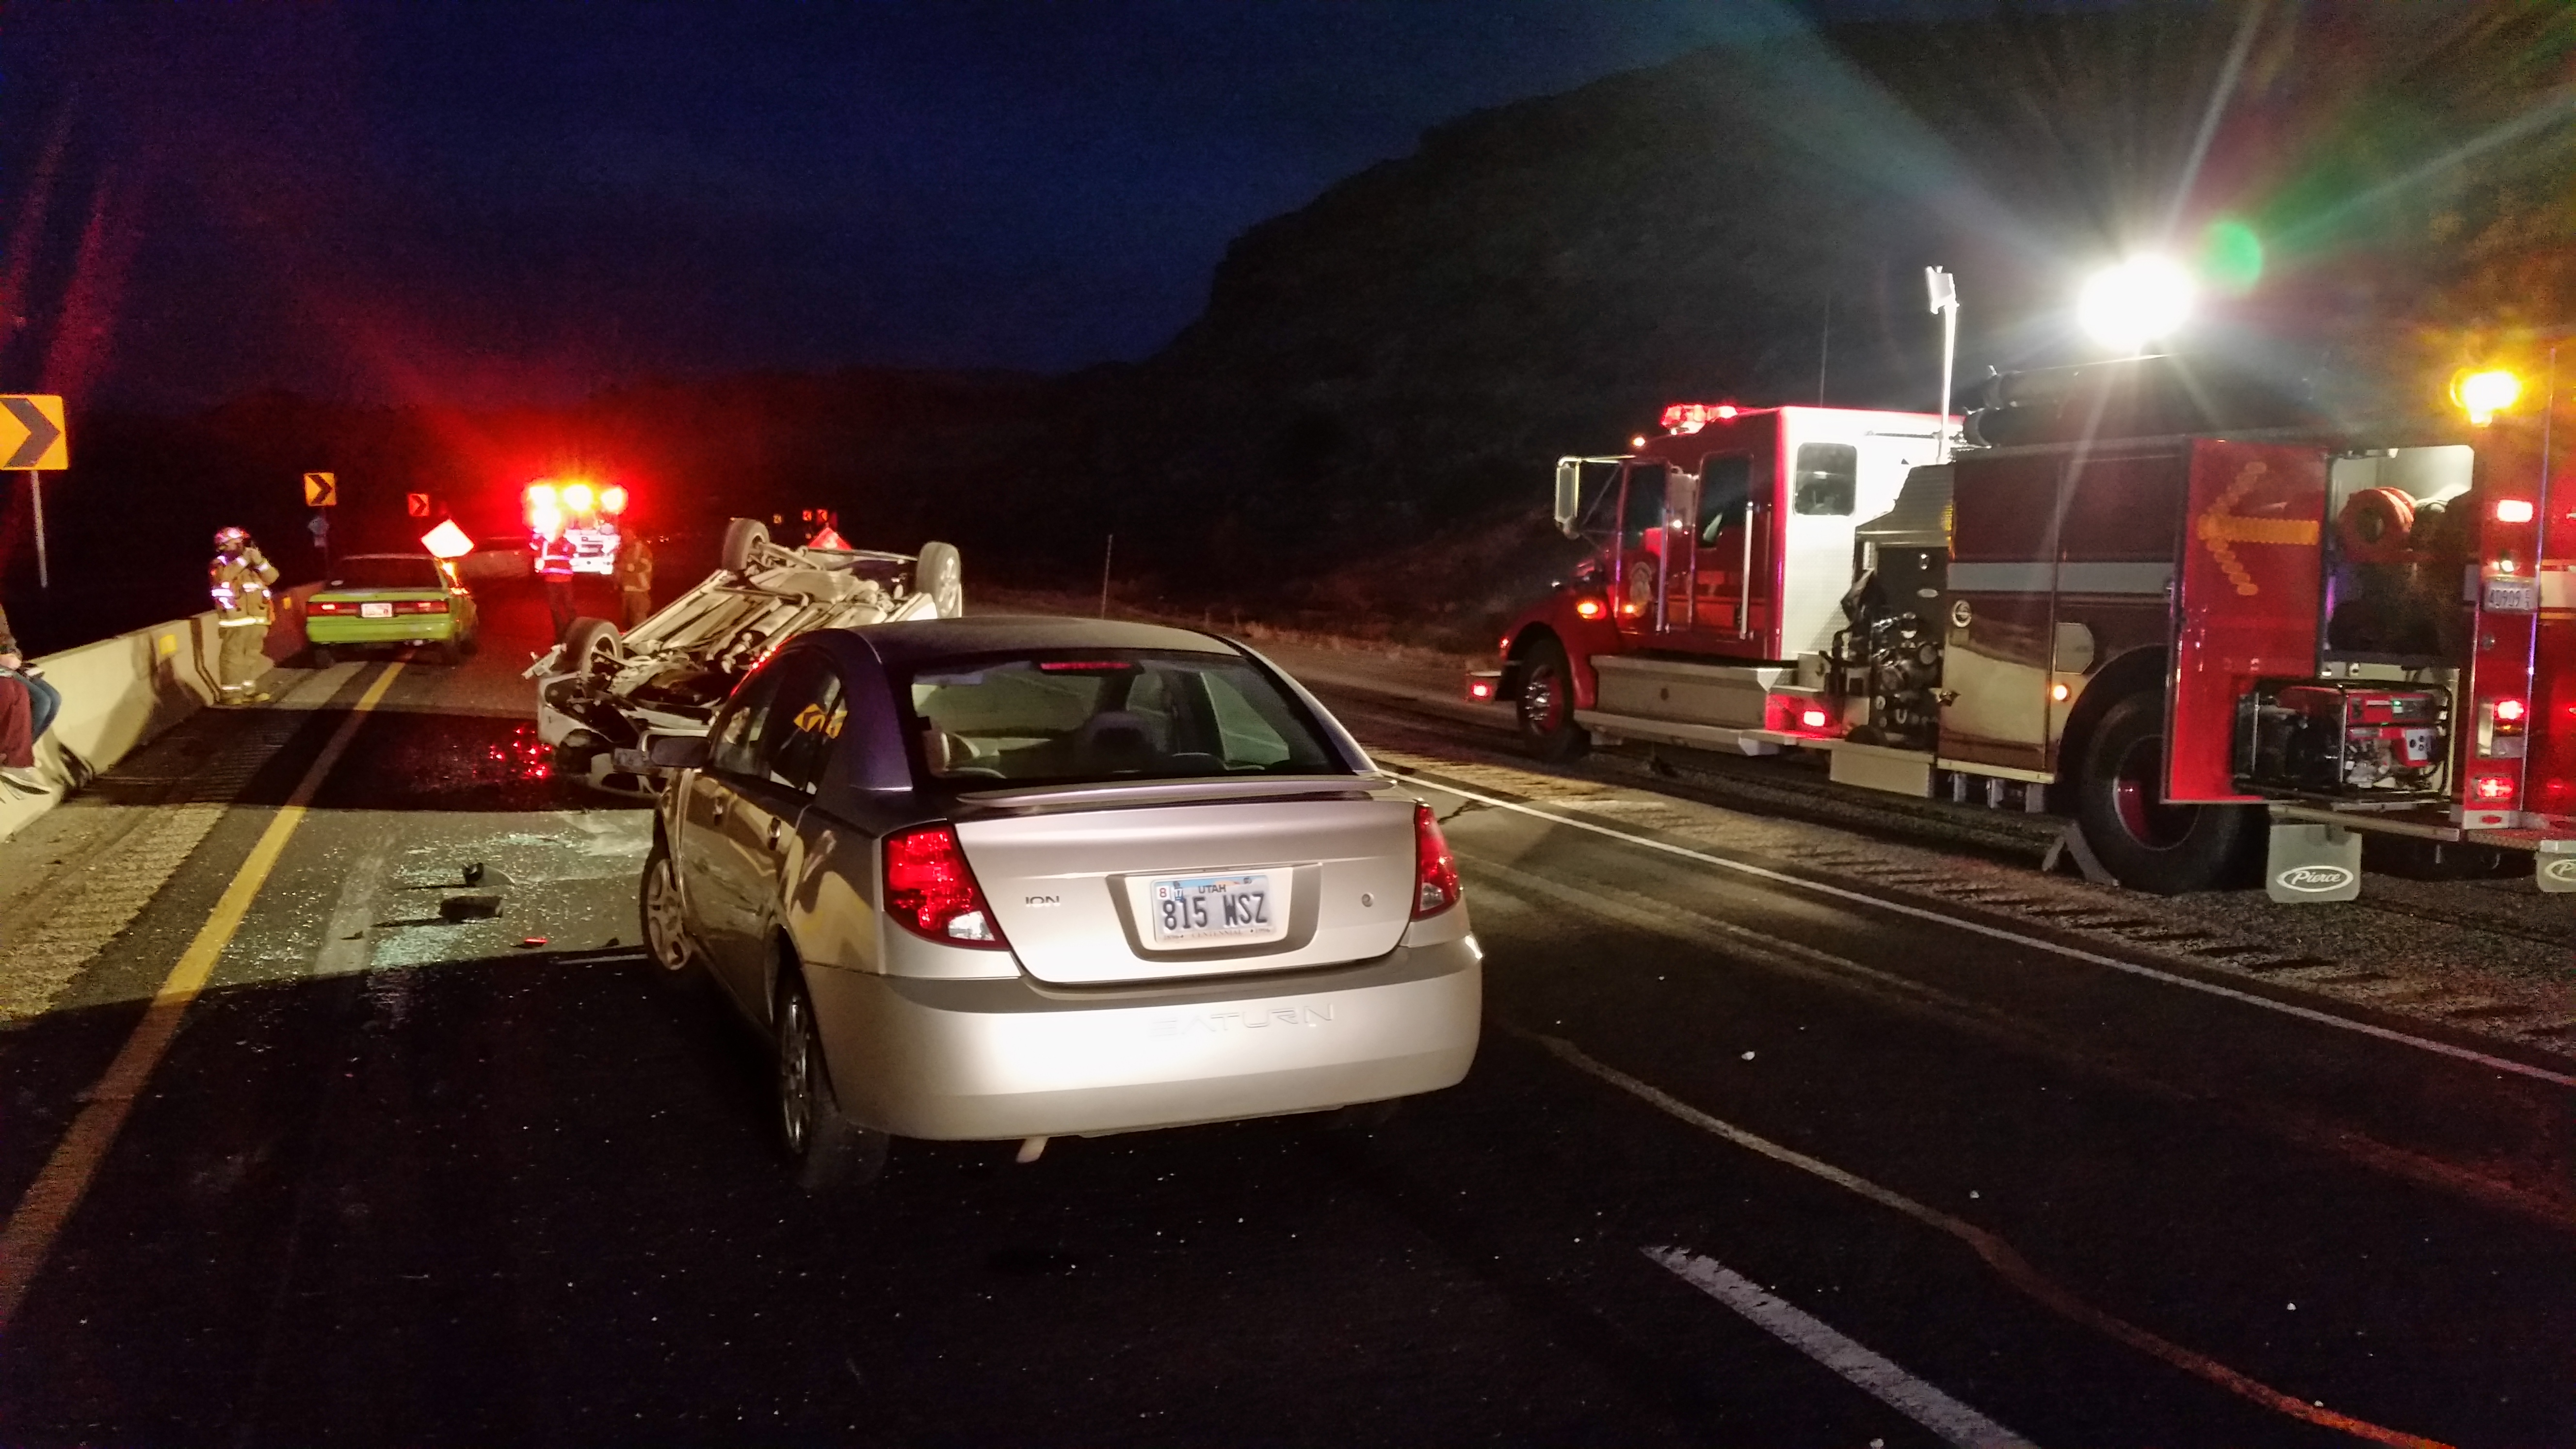 After colliding with a rolled car that had come to rest in the middle of Interstate 15 near milepost 23, a 54-year-old man excited his vehicle and was struck by an oncoming car. The man was transported to the hospital in critical condition, Washington County, Utah, Nov. 1, 2016 | Photo courtesy of the Utah Highway Patrol, St. George News